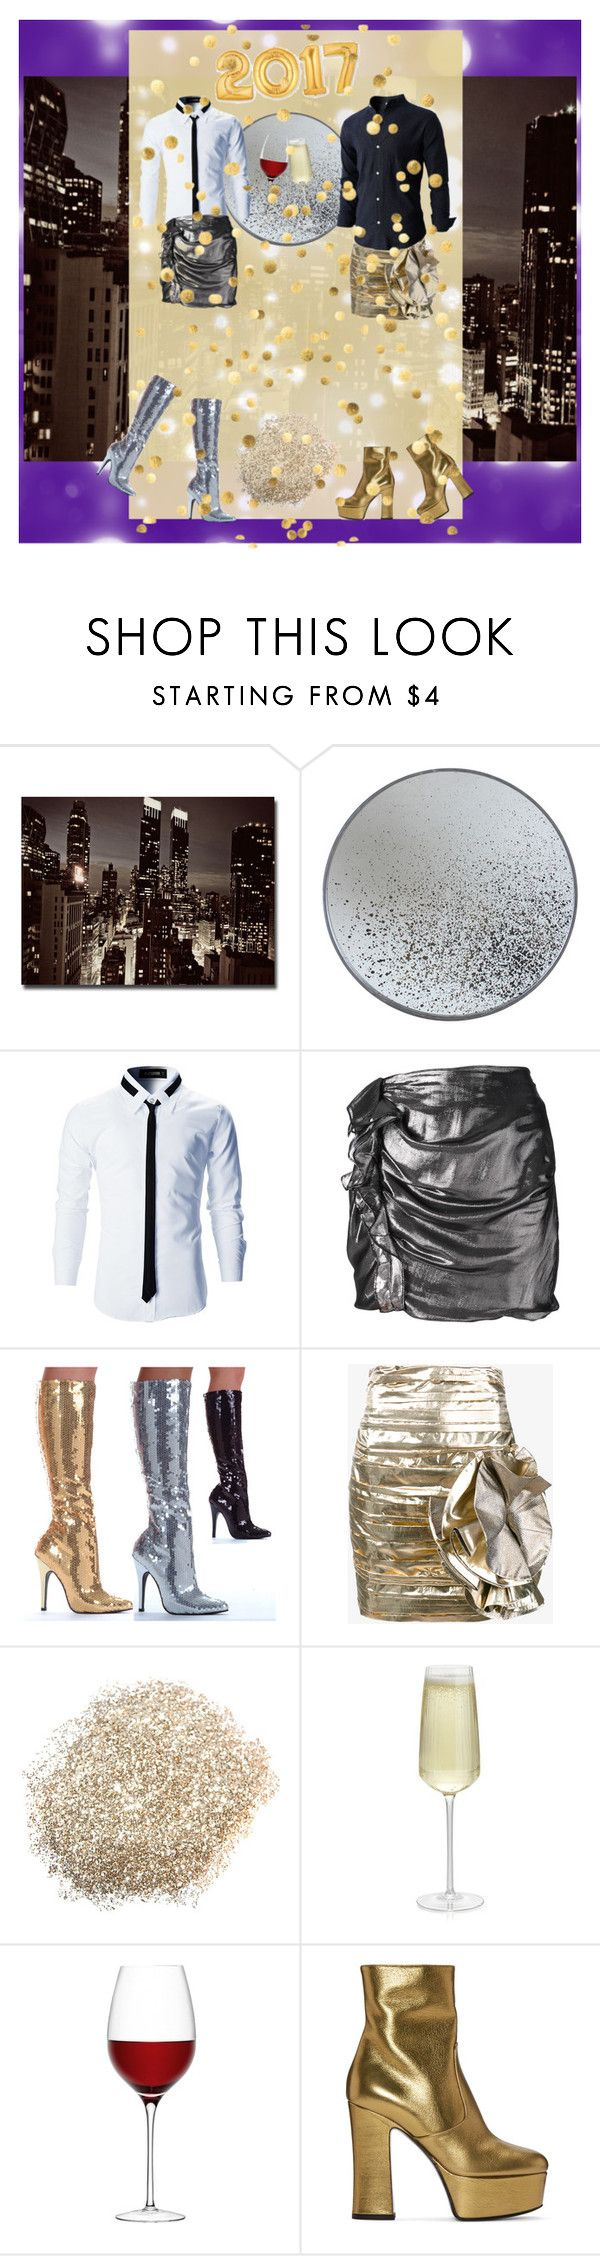 """""""Happy New Year!"""" by badstan ❤ liked on Polyvore featuring Trademark Fine Art, Notre Monde, Isabel Marant, Ellie, Faith Connexion, Crate and Barrel, LSA International, Yves Saint Laurent, men's fashion and menswear"""